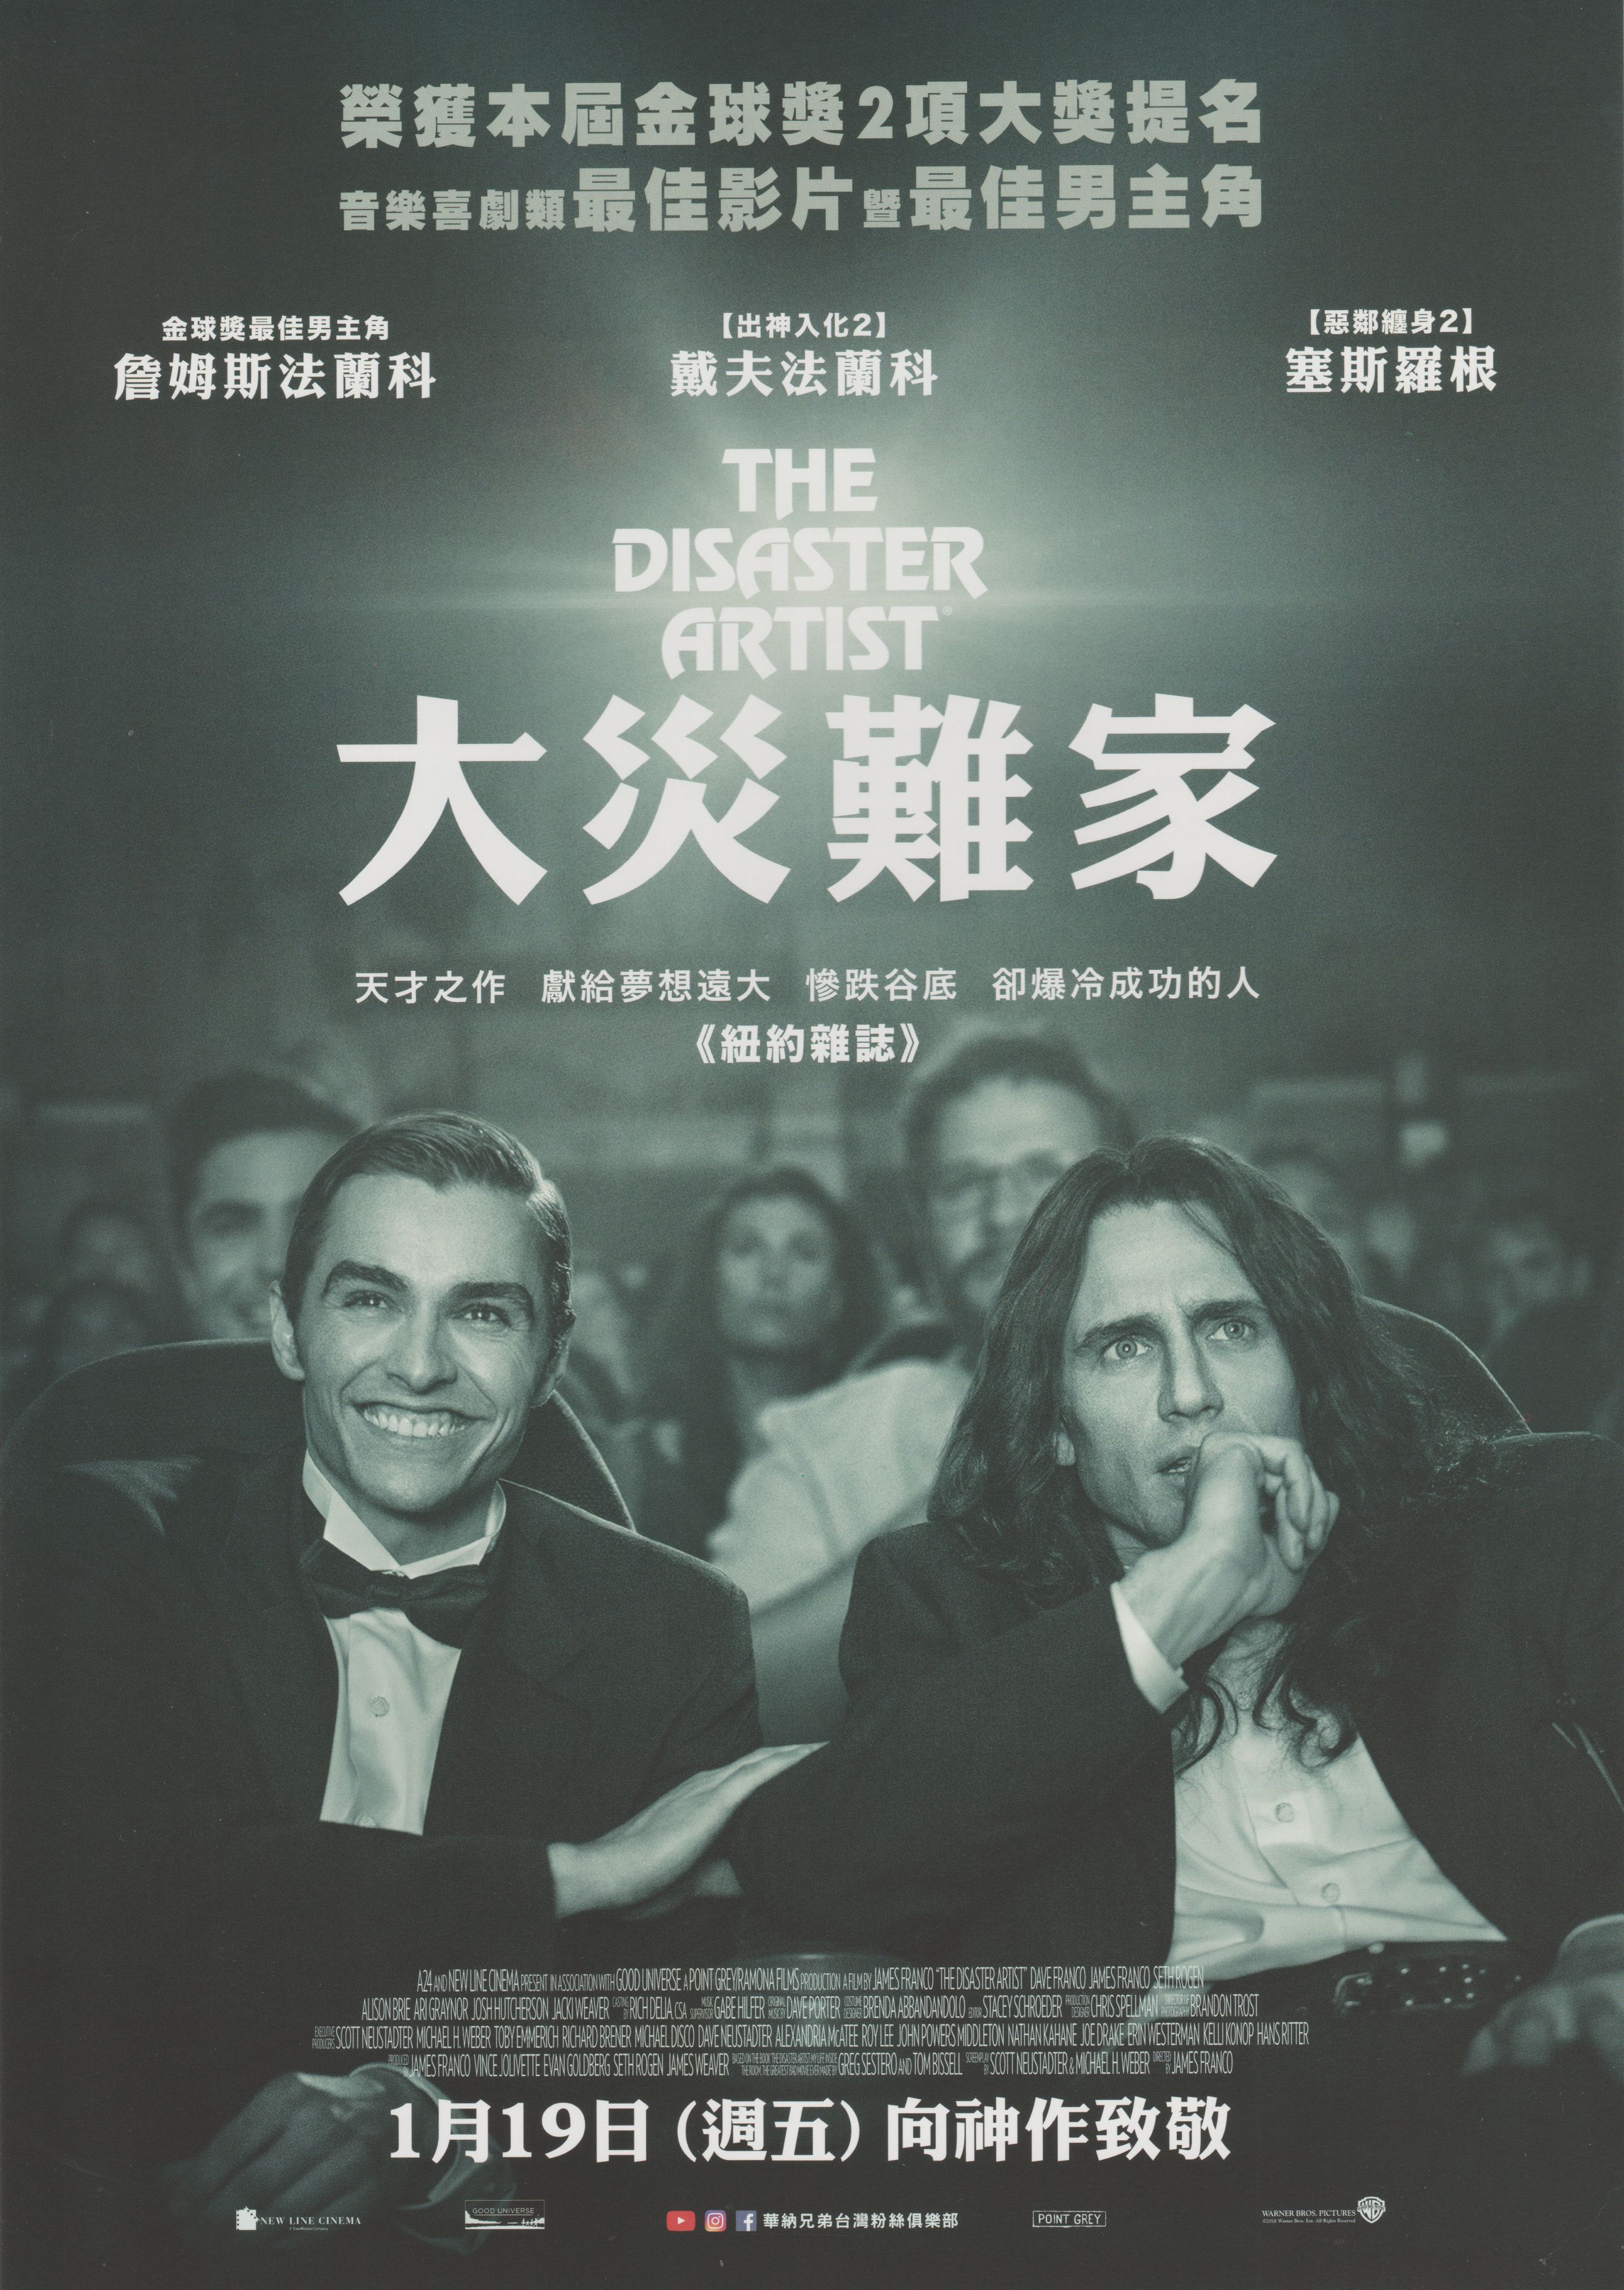 THE DISASTER ARTIST (Issue Date 2018.01.19) The artist